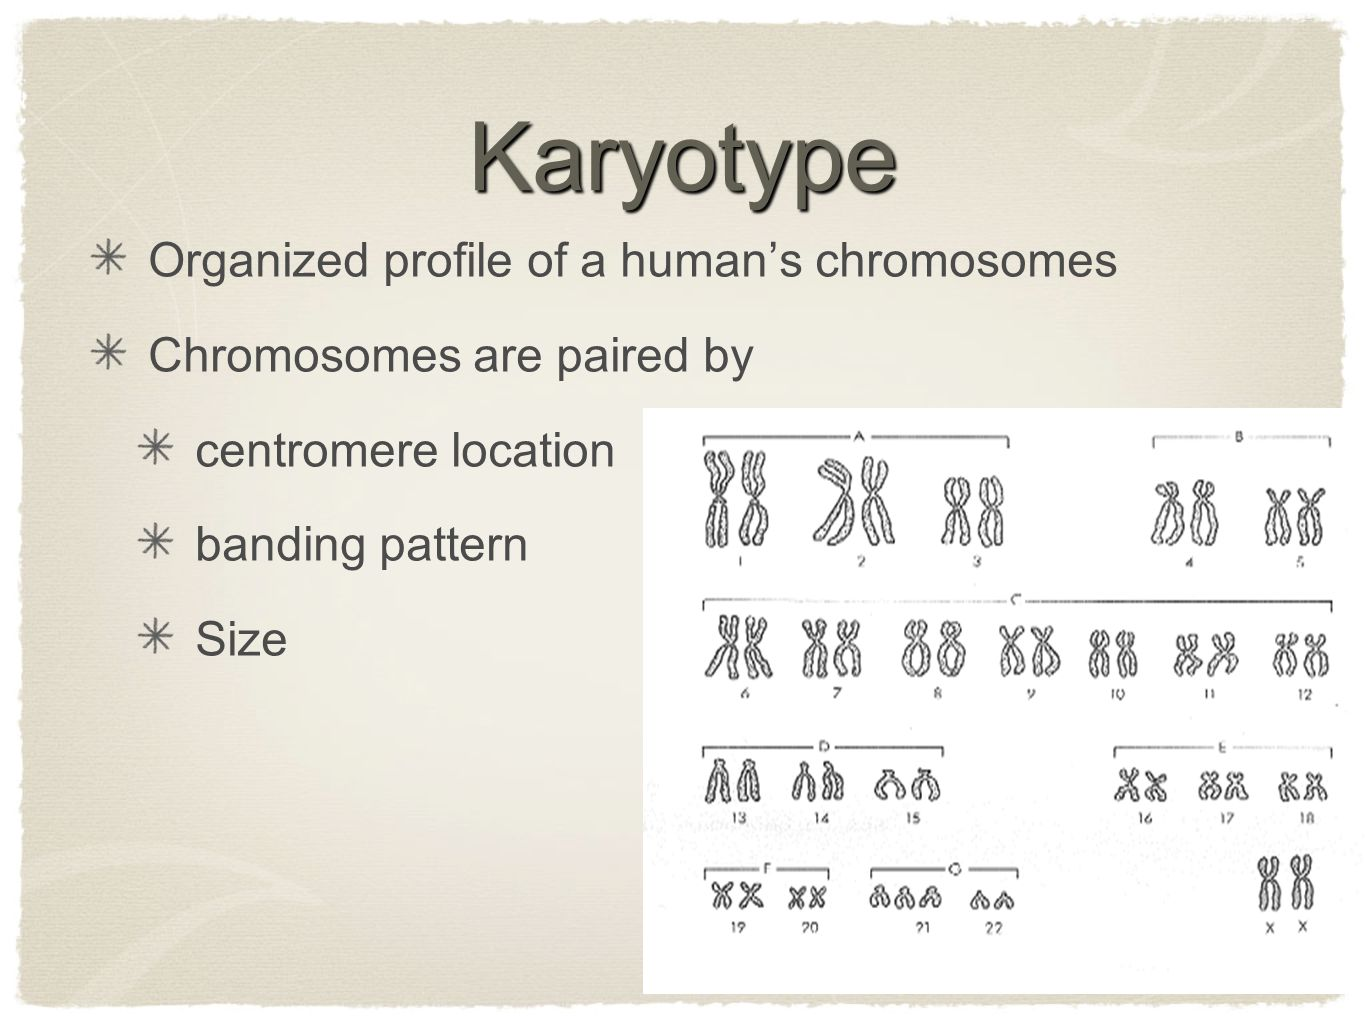 Karyotype Organized profile of a human's chromosomes